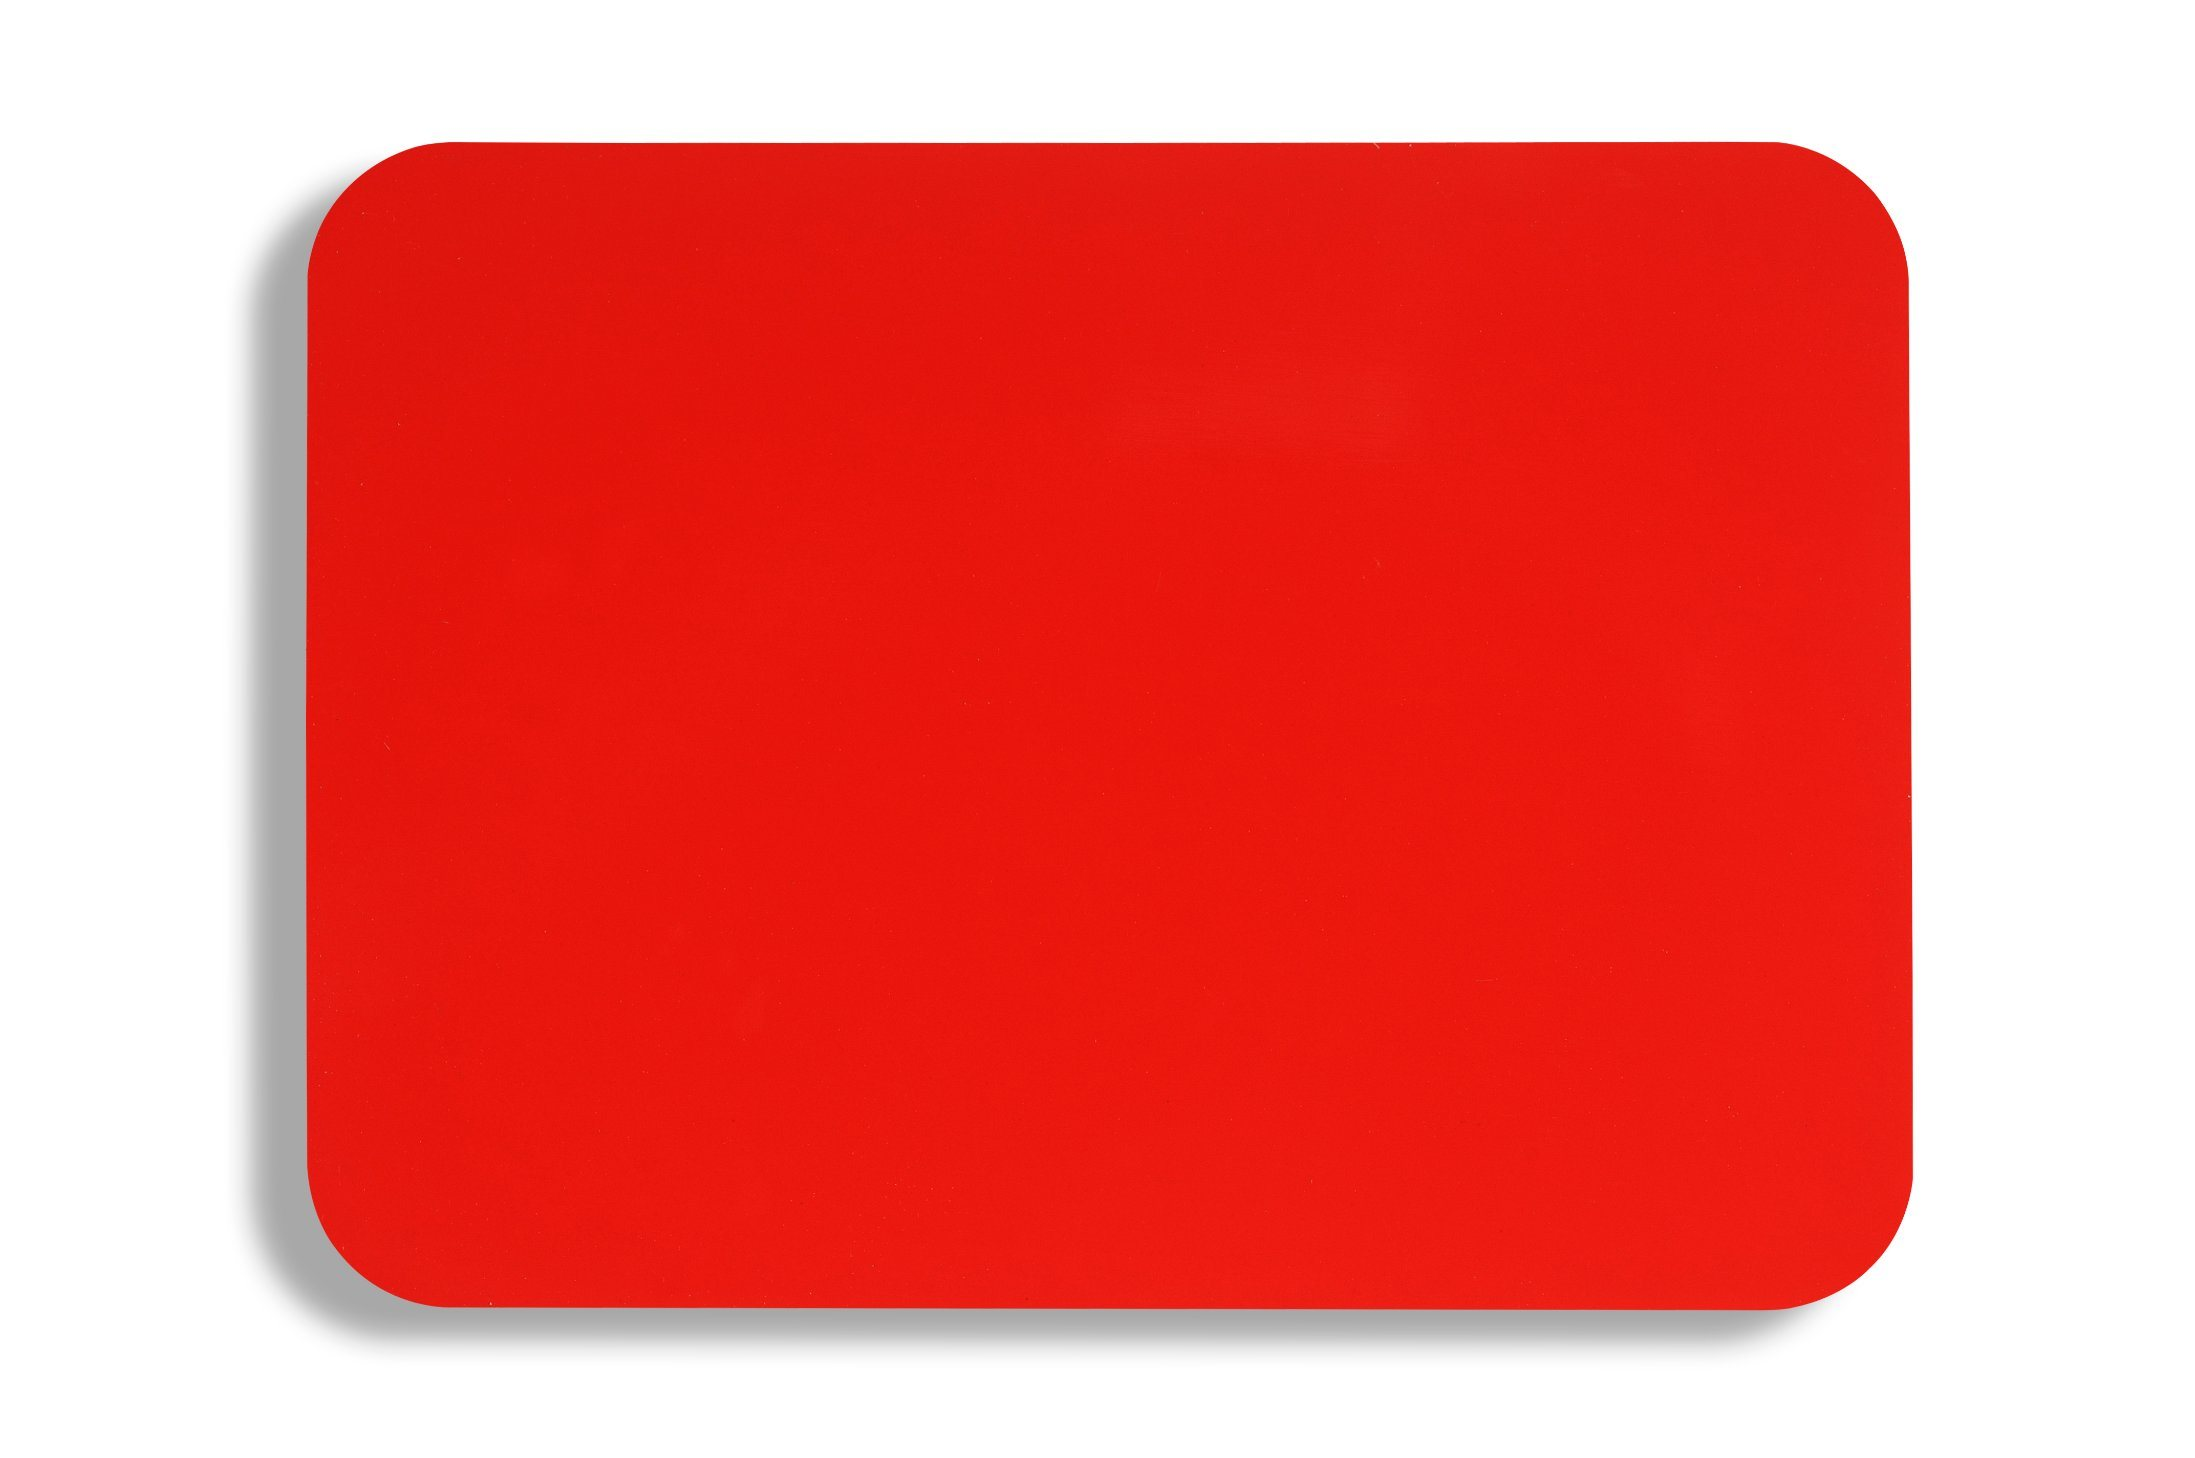 Aluis Exterior 6mm Aluminium Composite Panel-0.40mm Aluminium Skin Thickness of FEVE High Glossiness Bright Red